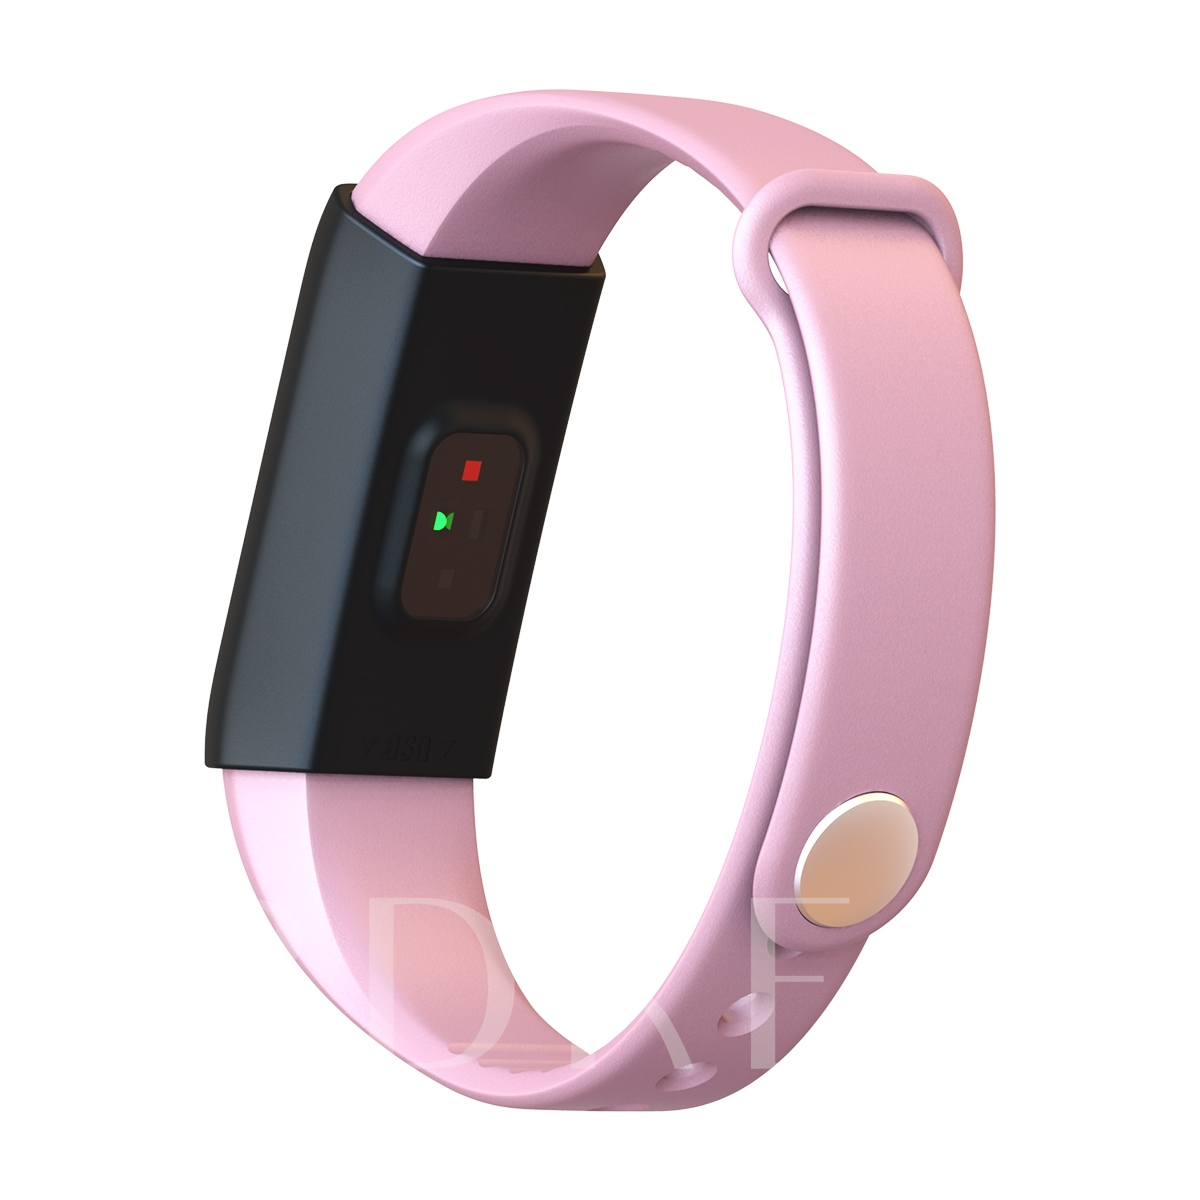 F600 Fitness Tracker with Big Screen Waterproof for iPhone Android Phones